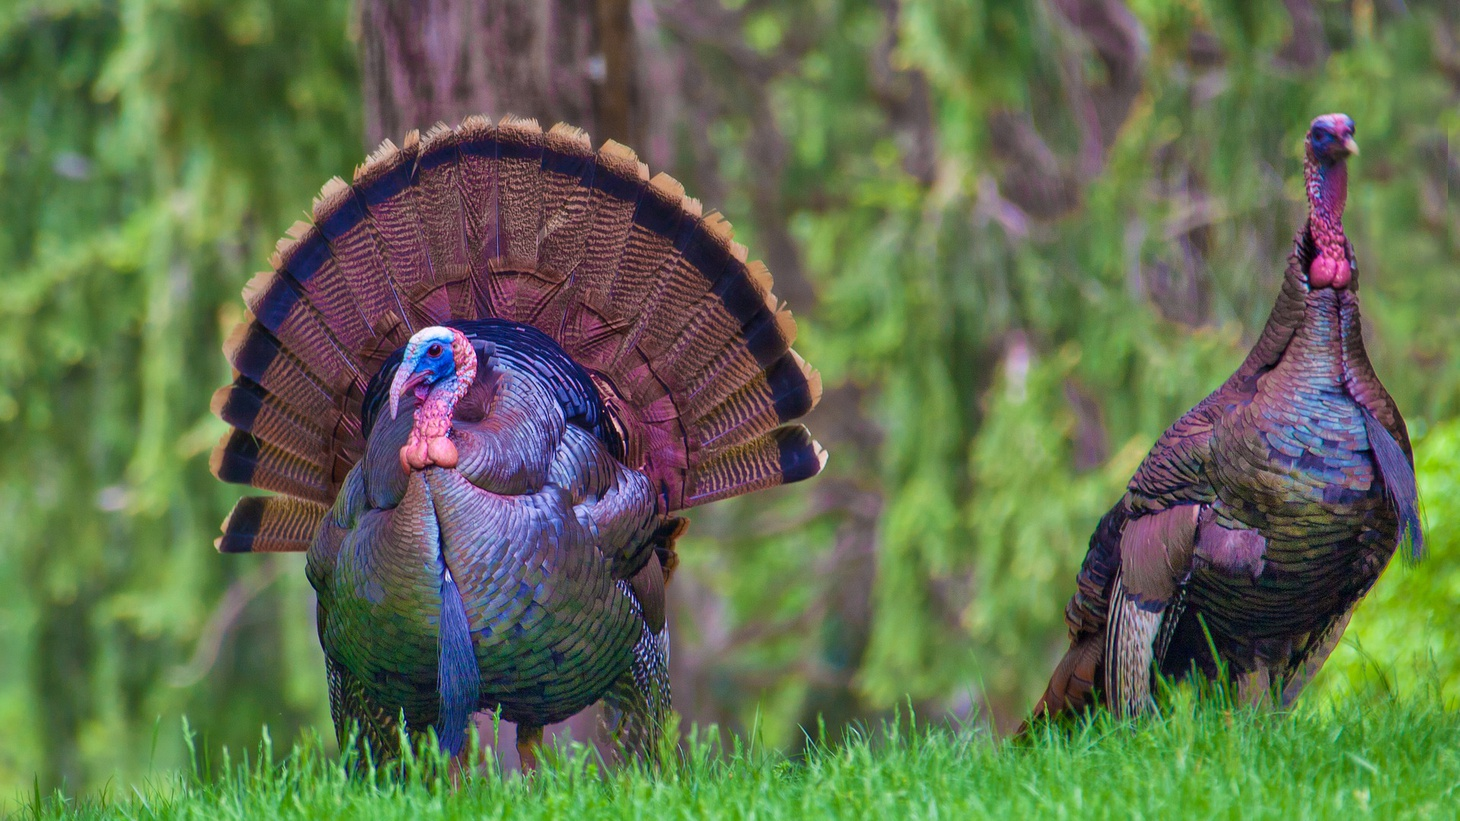 A 16-18 pound turkey is usually desired for a traditional Thanksgiving, but with people gathering only with family members this holiday, they'll want a smaller bird. Farmers are saying they may not have enough small birds, and they have too many big birds. That's all according to food business reporter Laura Reiley.